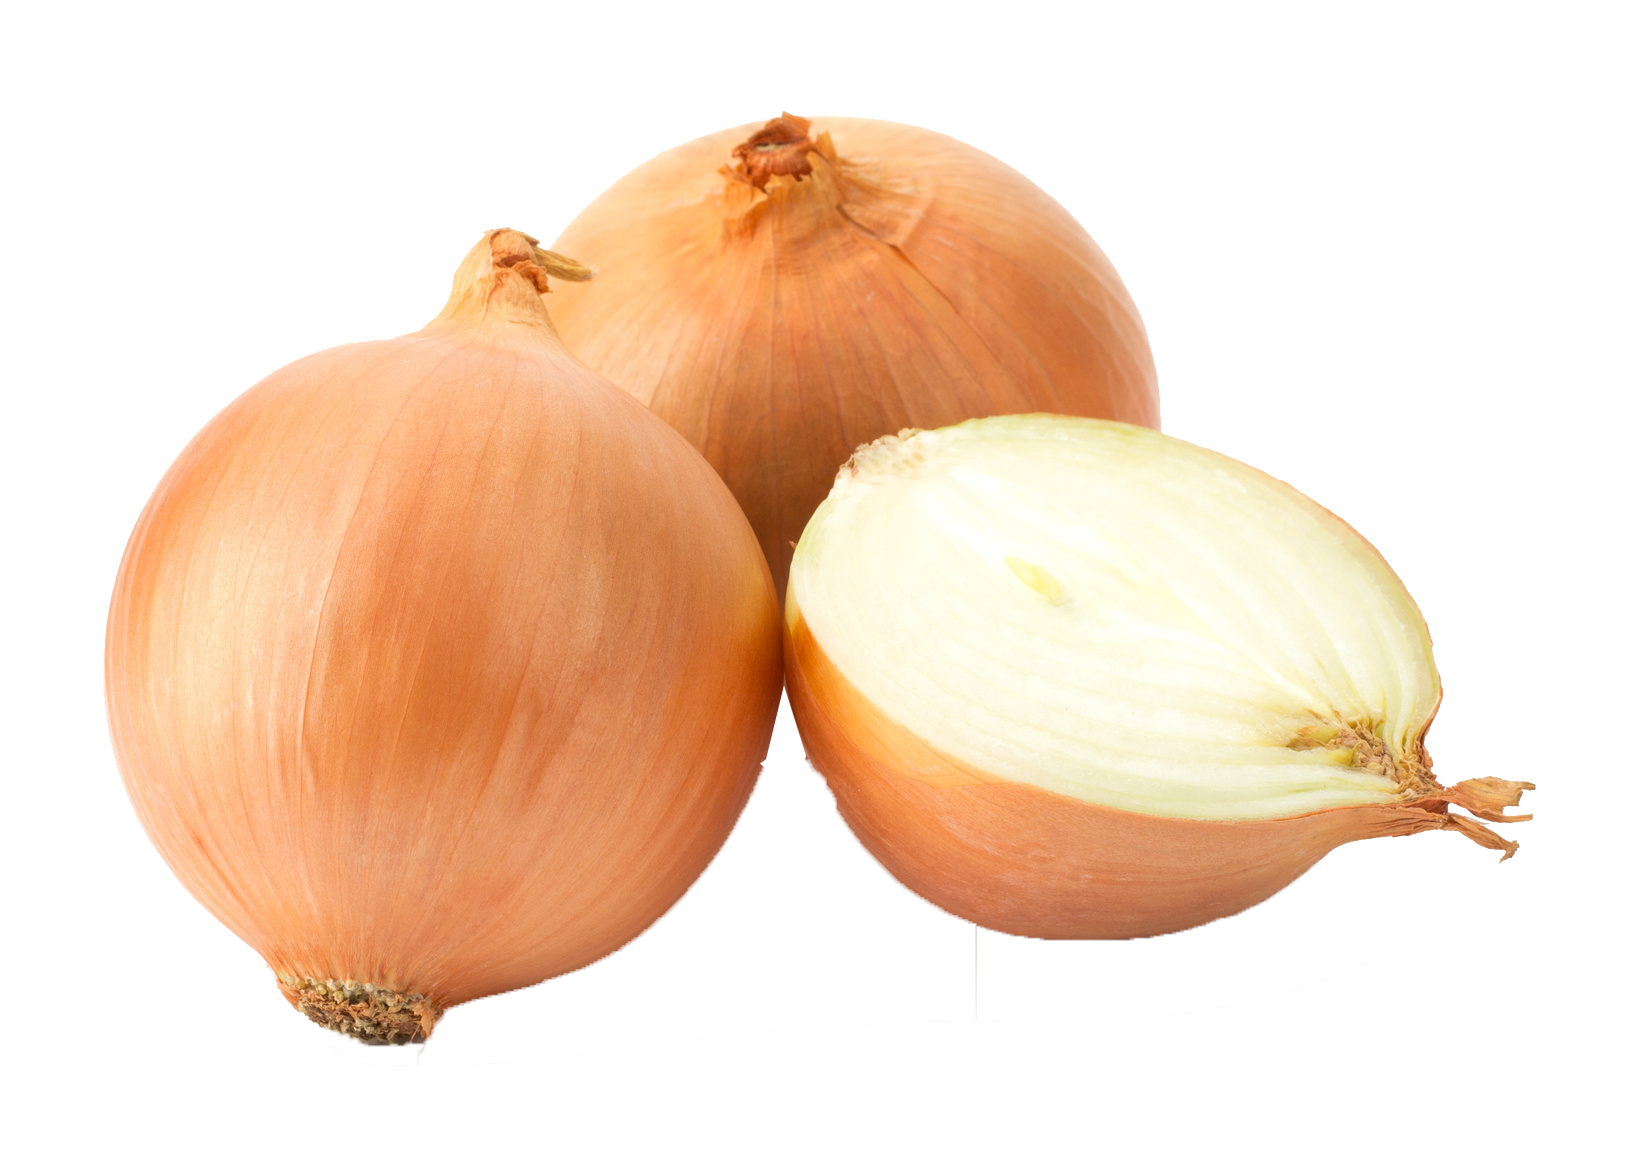 Onion PNG HD Background.